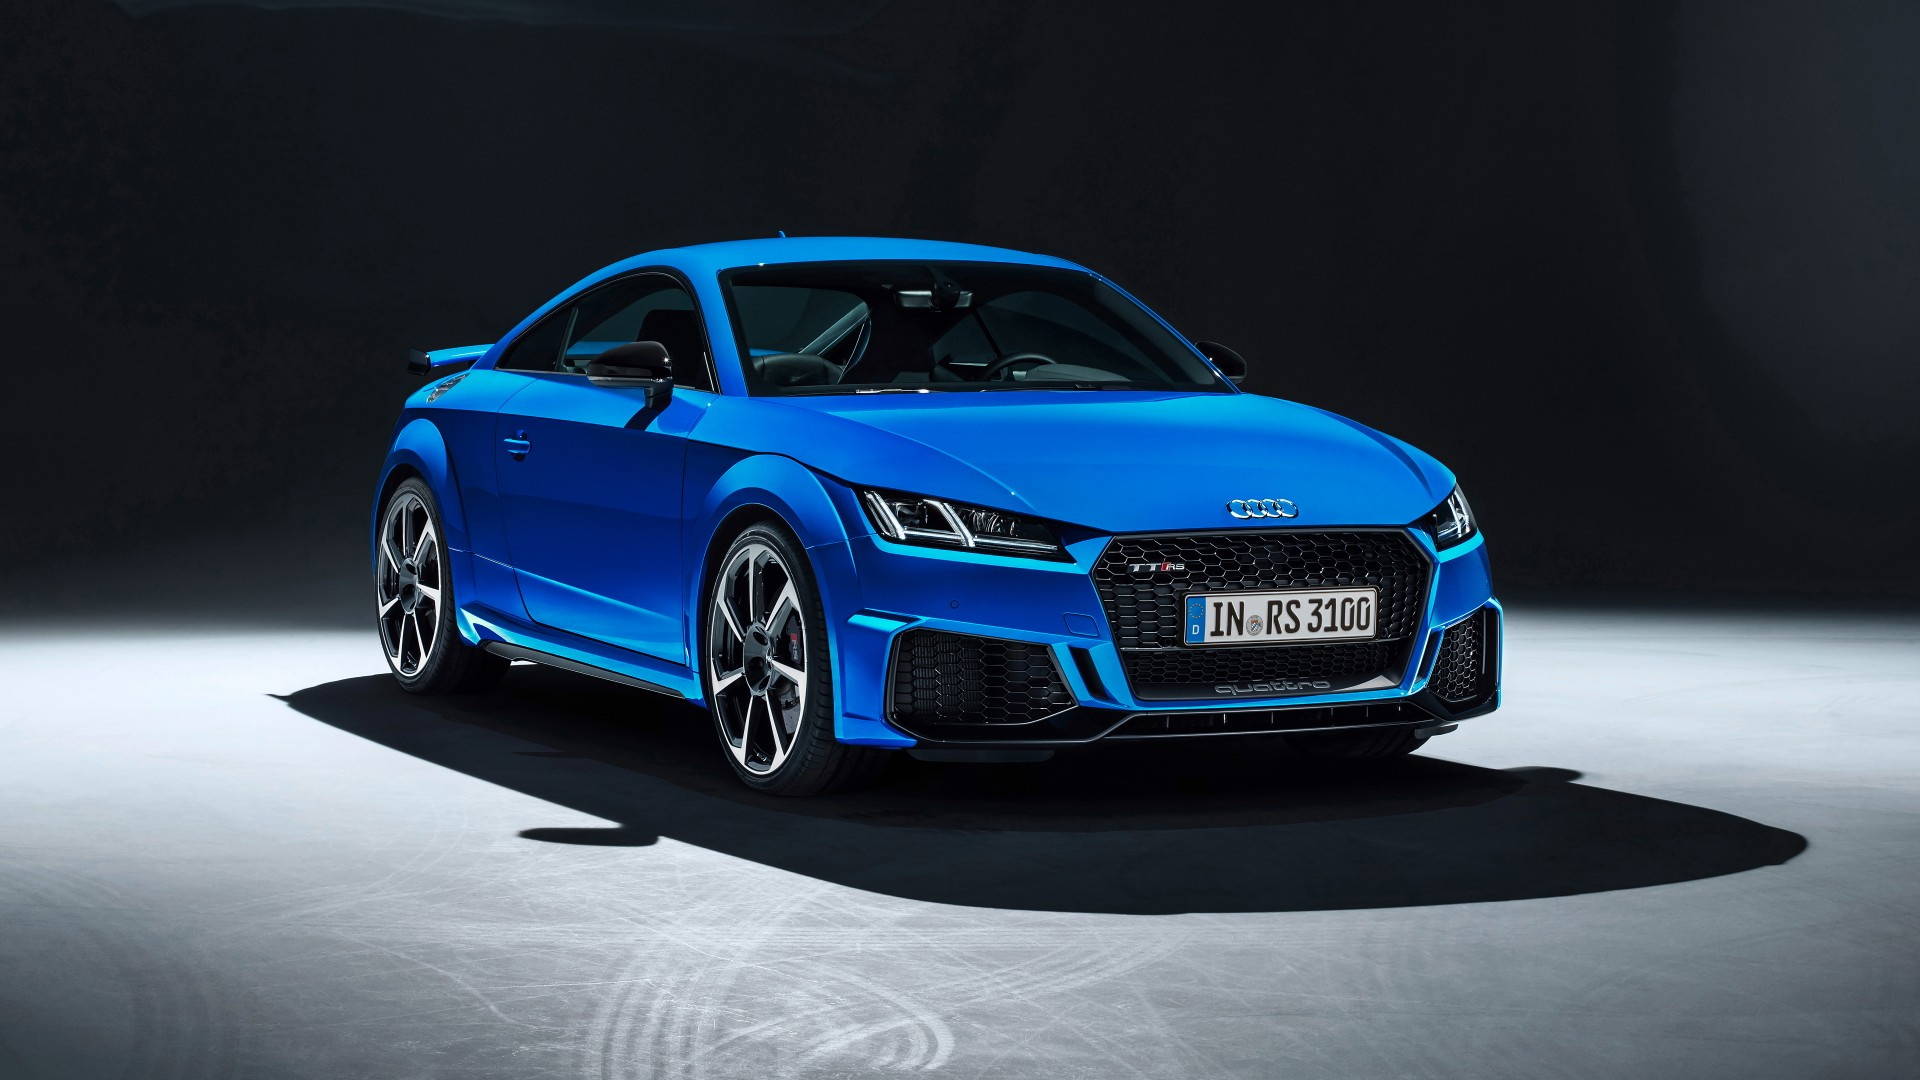 Hd Wallpaper Car Widescreen Audi Tt Rs Coupe 2019 4k 8k Wallpapers Hd Wallpapers